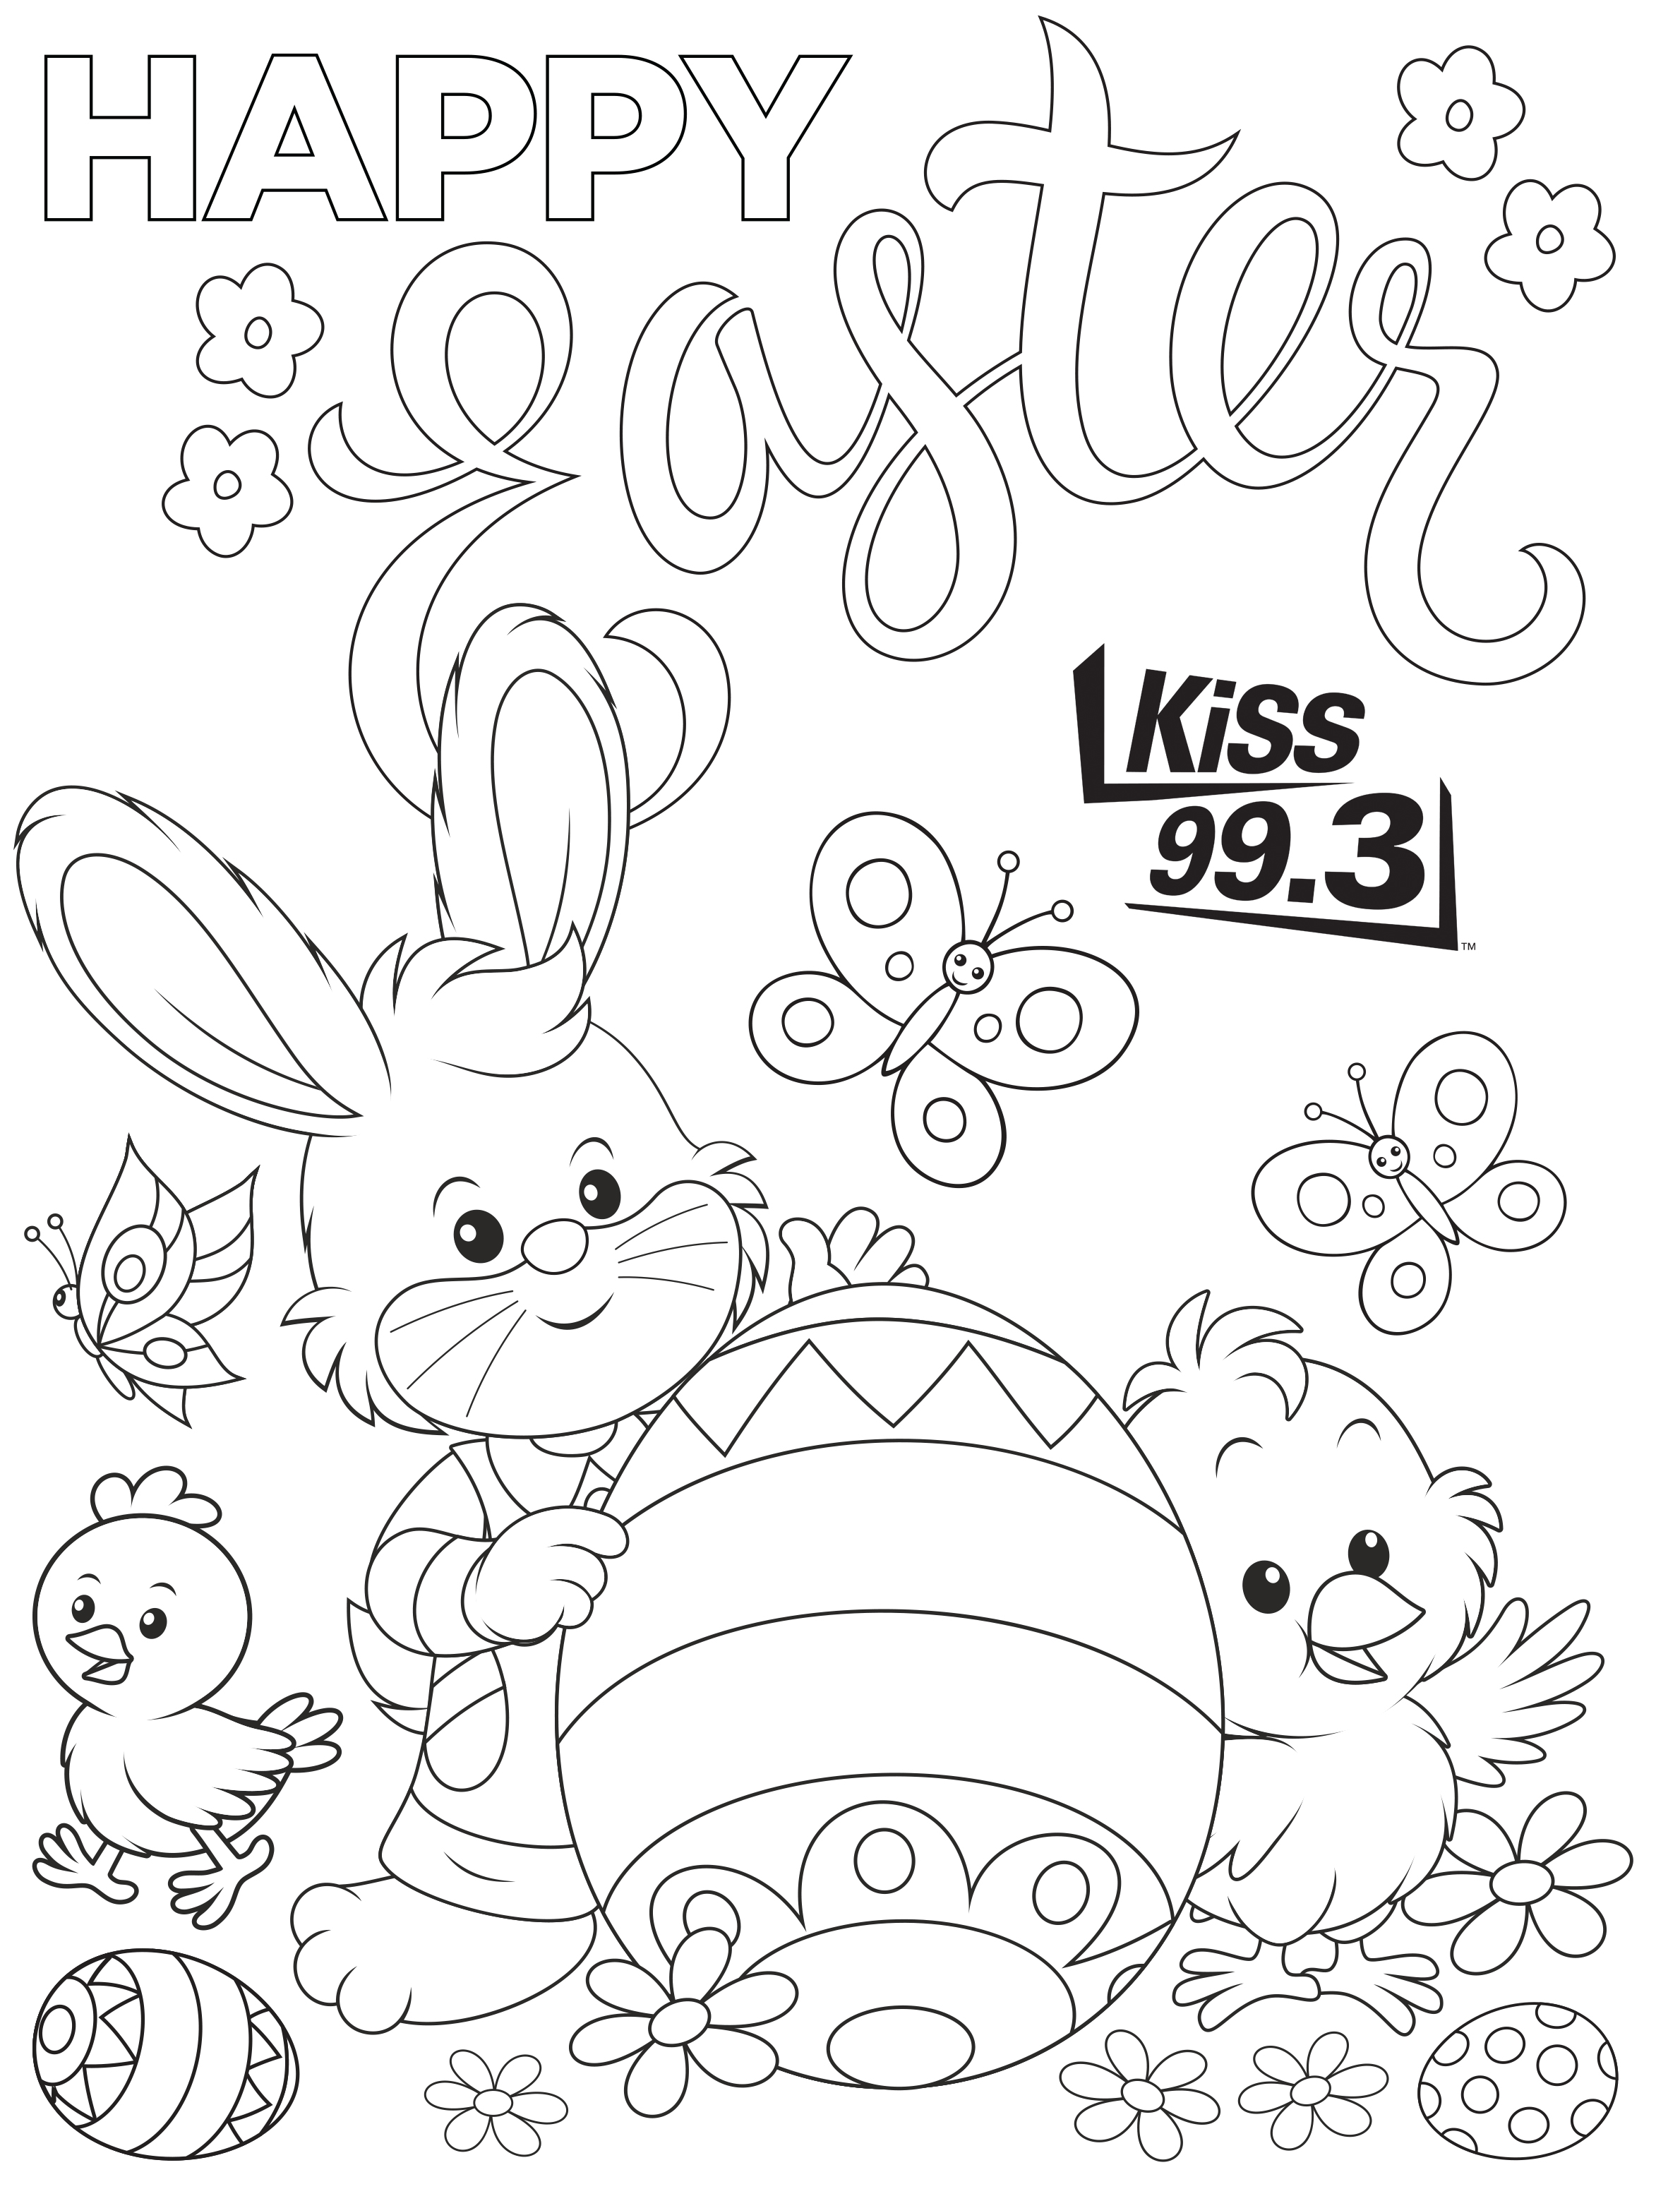 Print and Colour our Easter Colouring Page - KiSS 99.3 Timmins